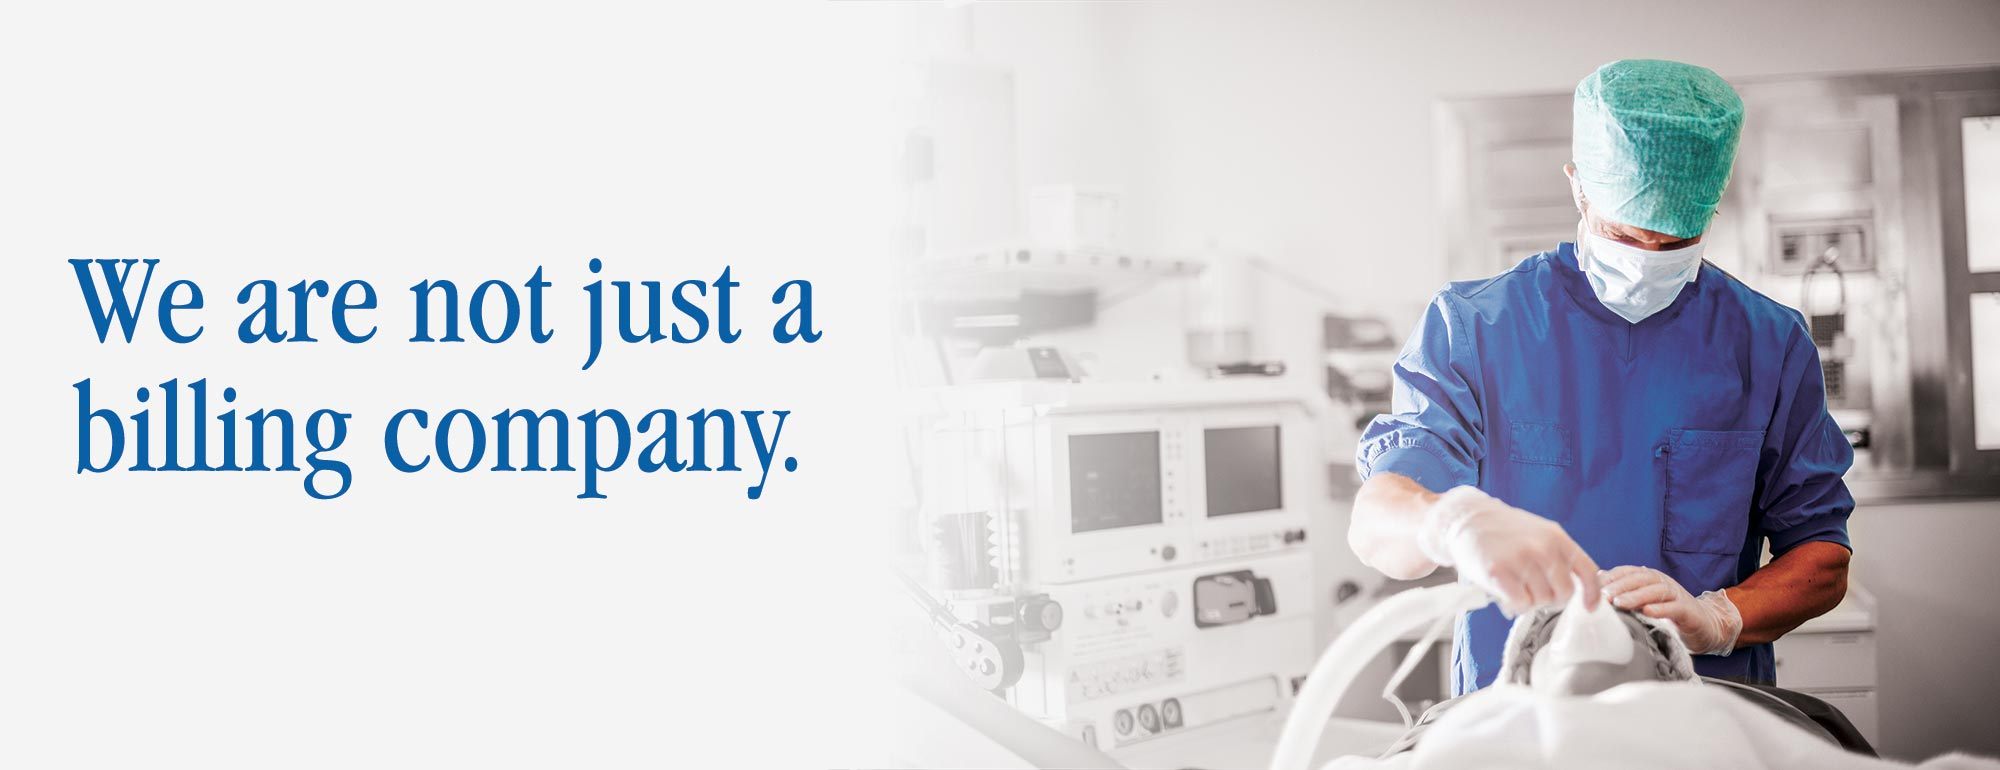 About Us Image | Medac Anesthesia Business Partners